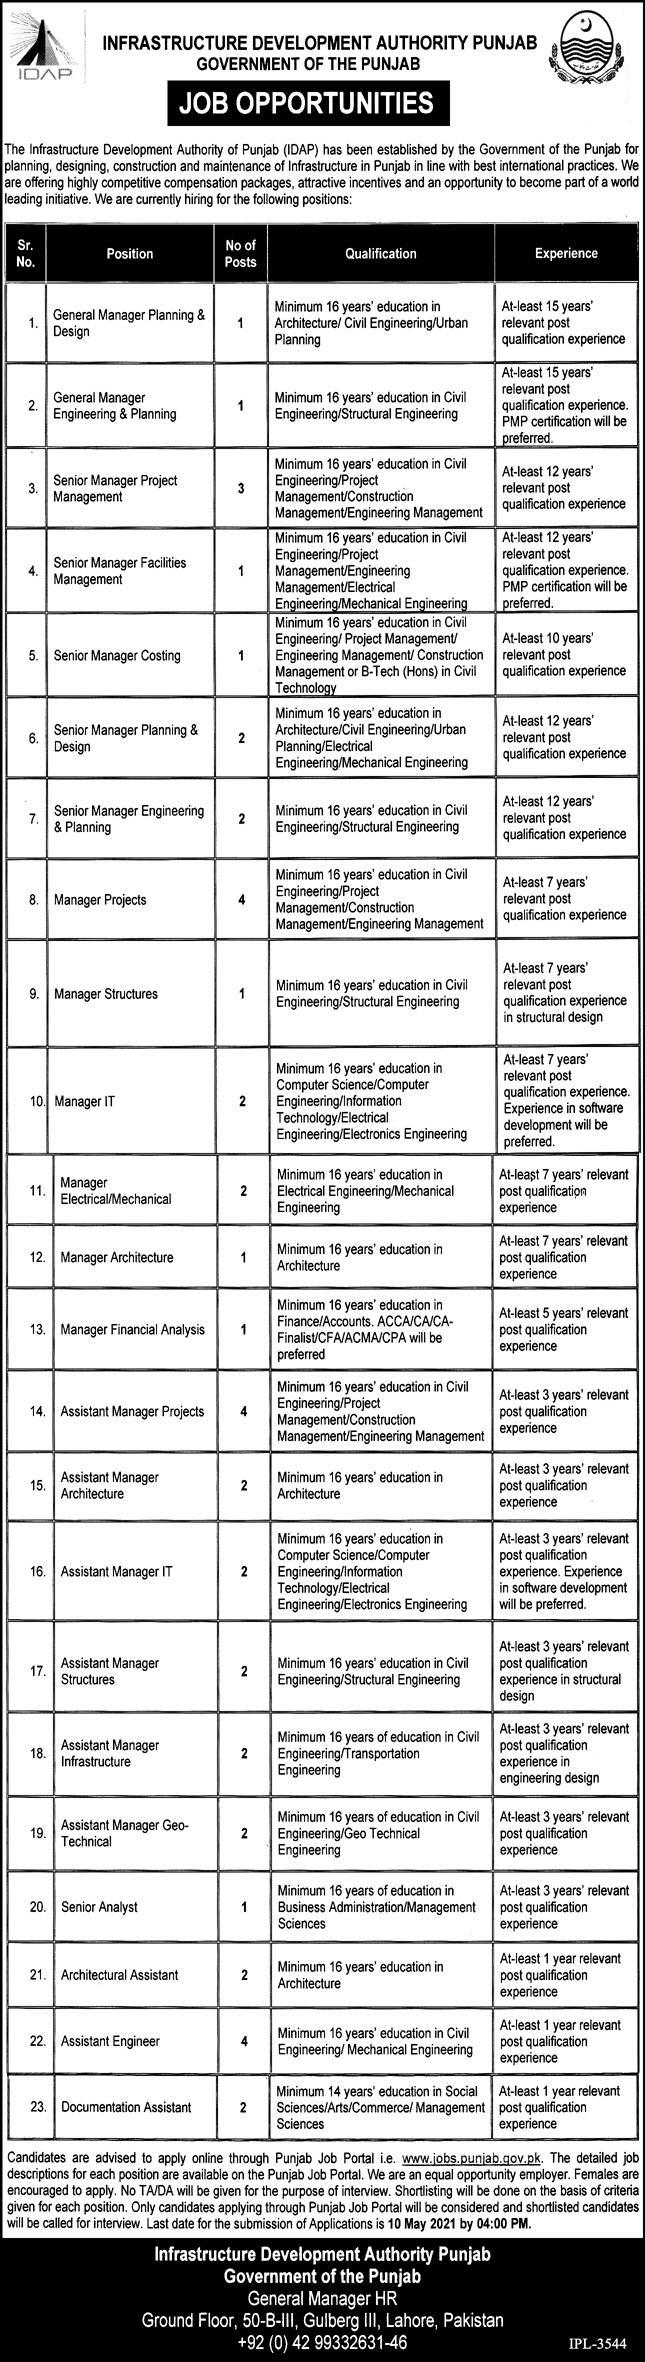 Infrastructure Development Authority of Punjab (IDAP) Jobs 20th April 2021